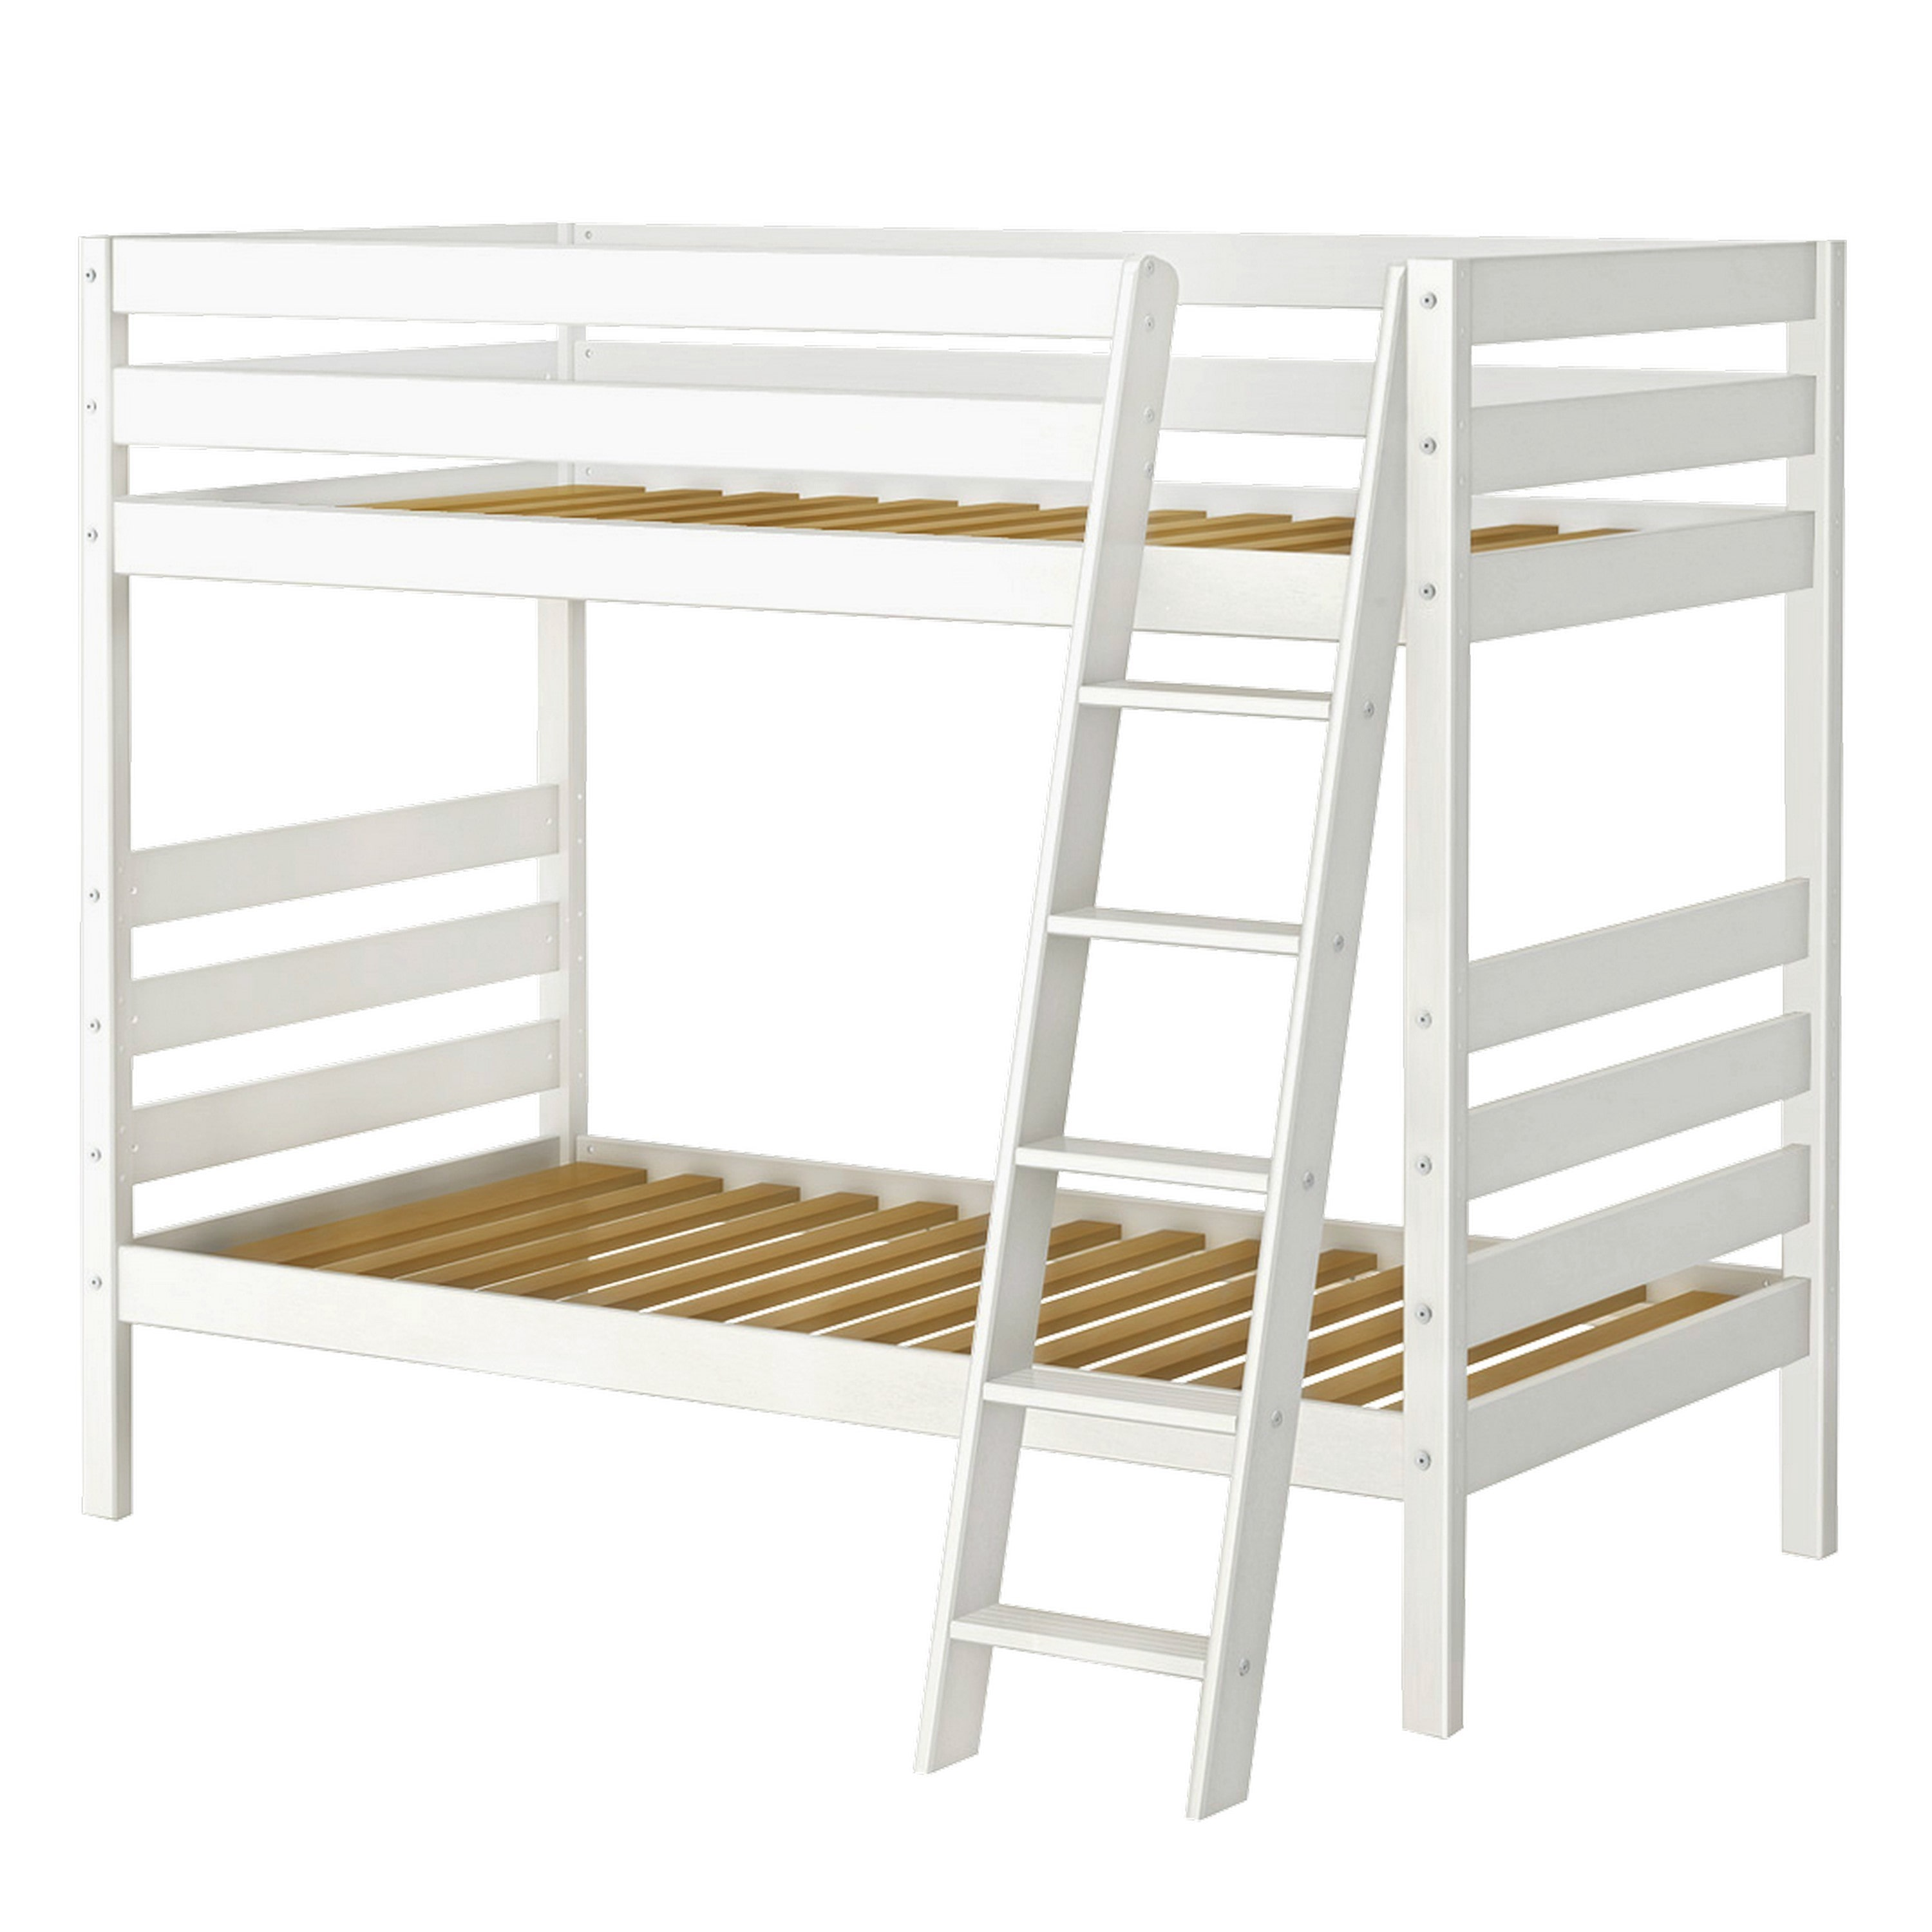 Merveilleux Maxwood Furniture Inc Double Up Bunk Bed With Angle Ladder   Walmart.com